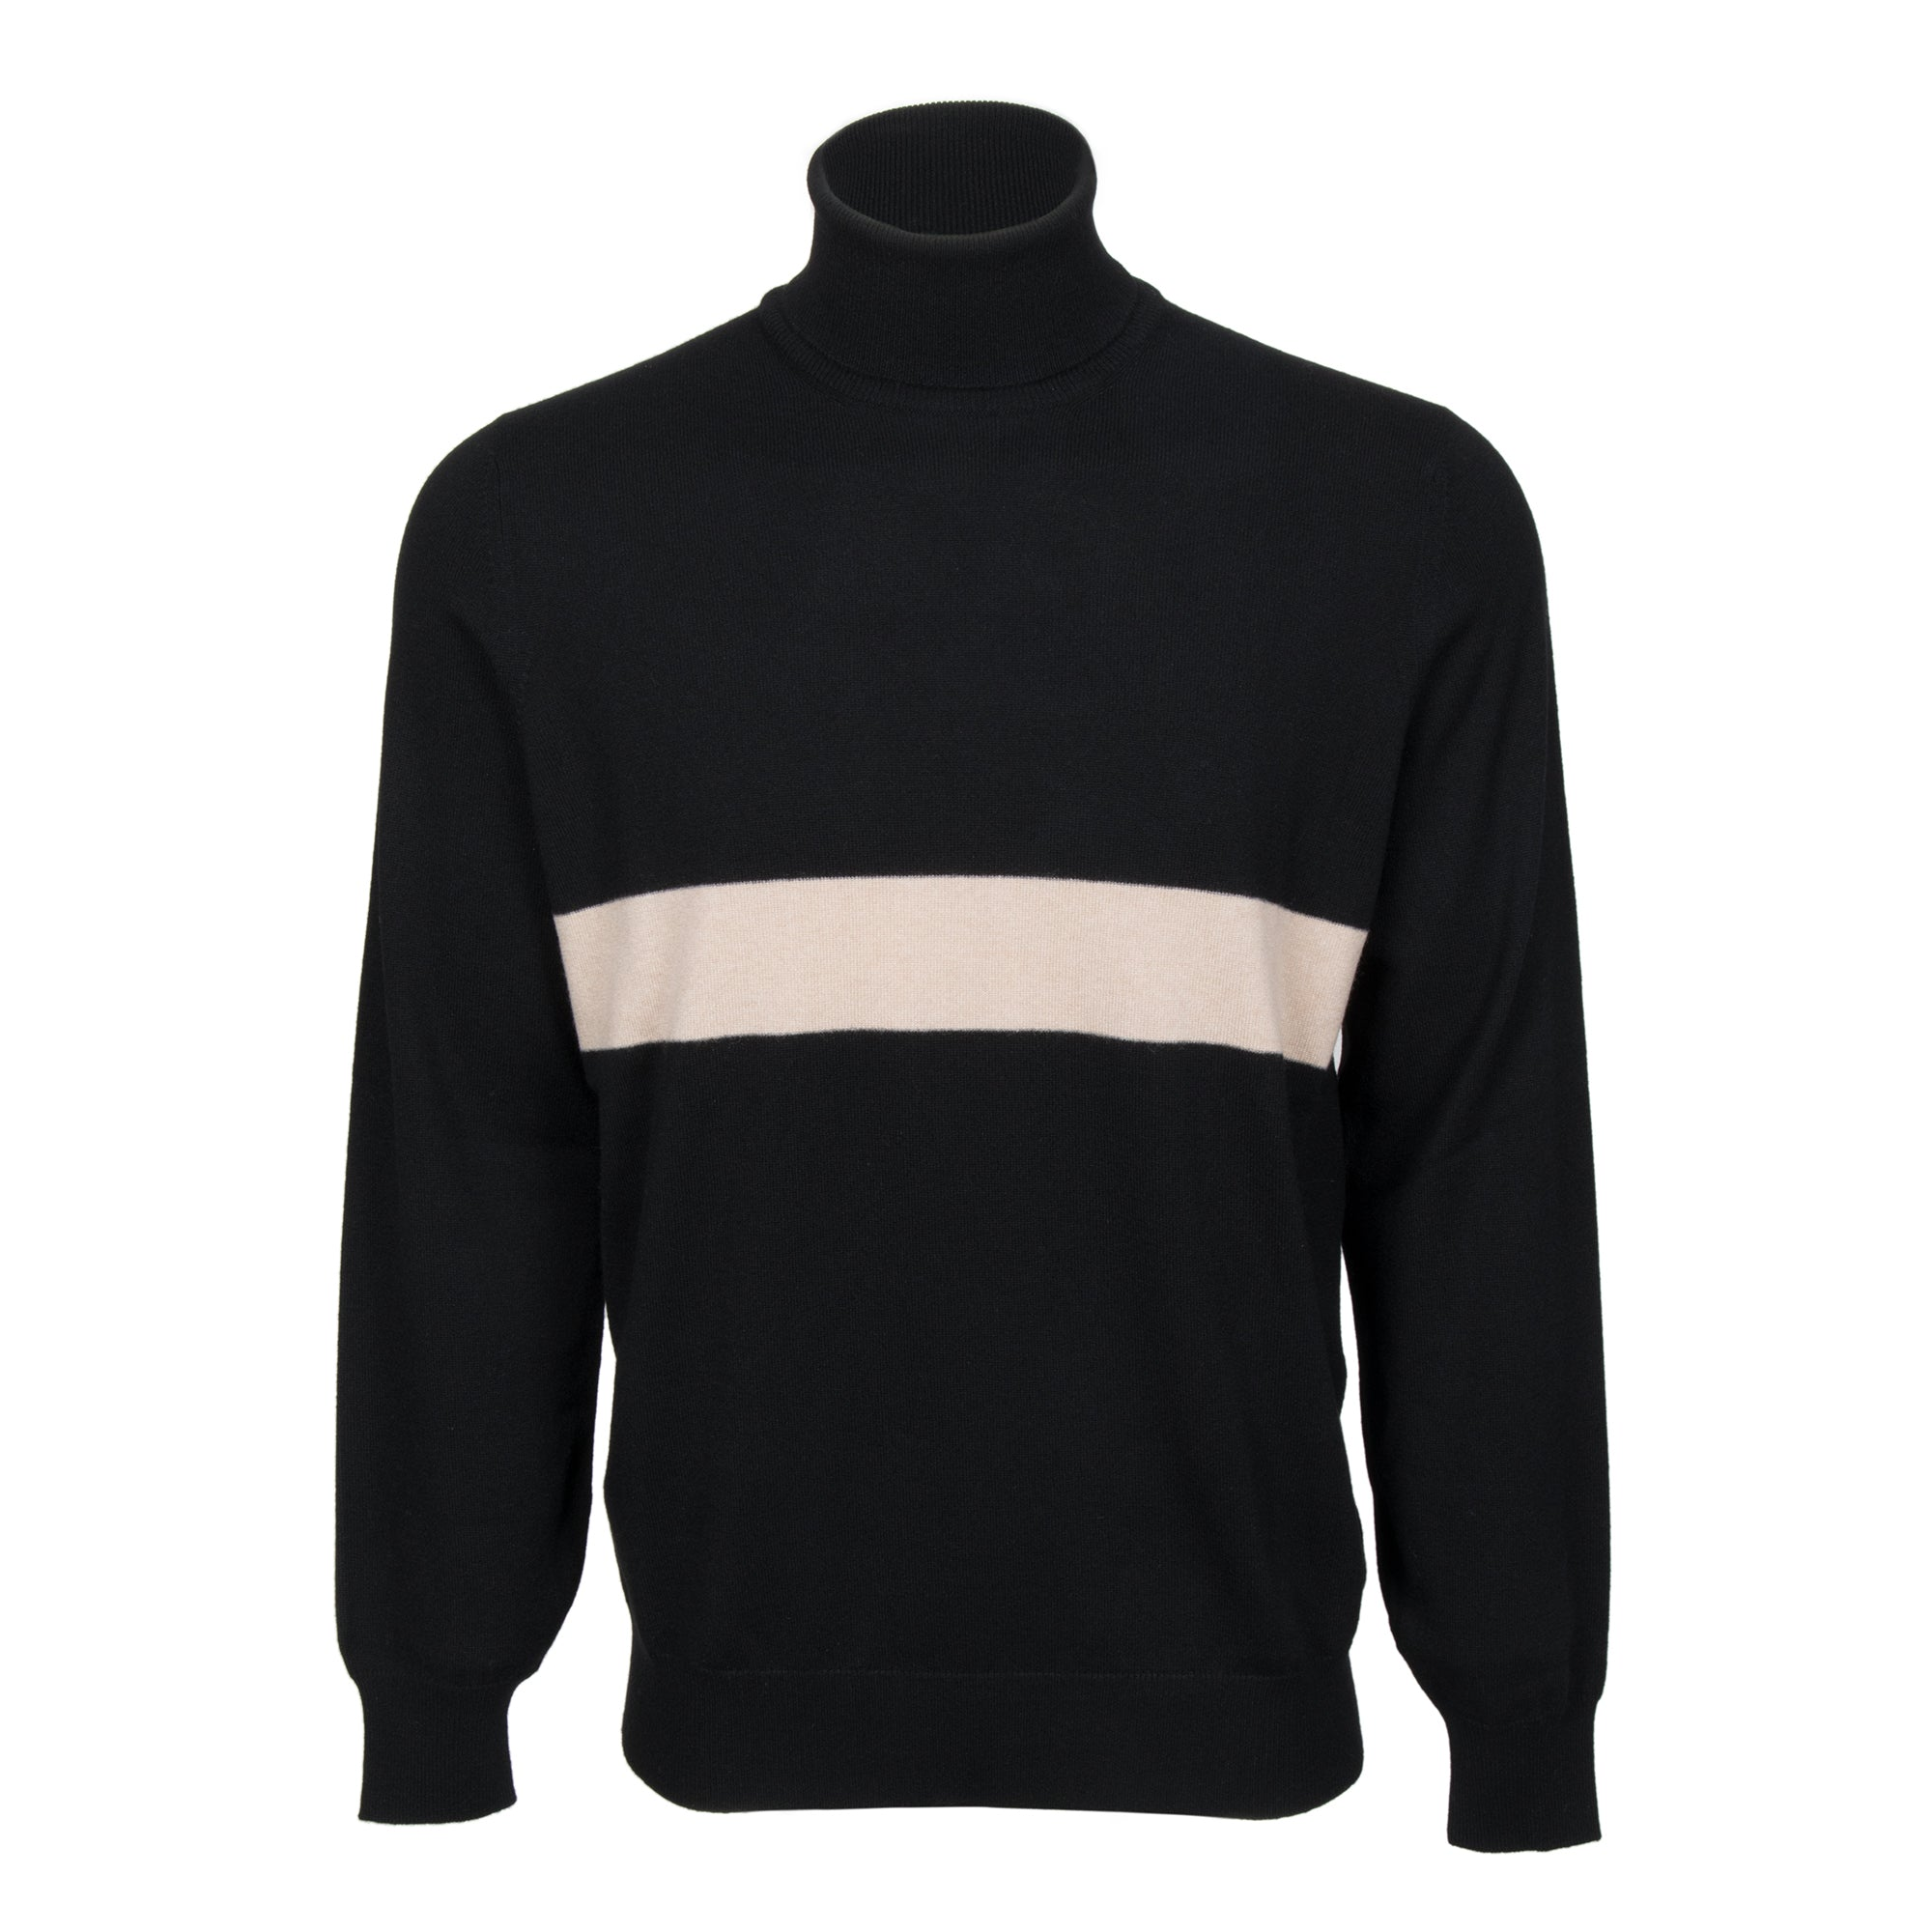 Brunello Cucinelli Turtleneck Cashmere Sweater in Black